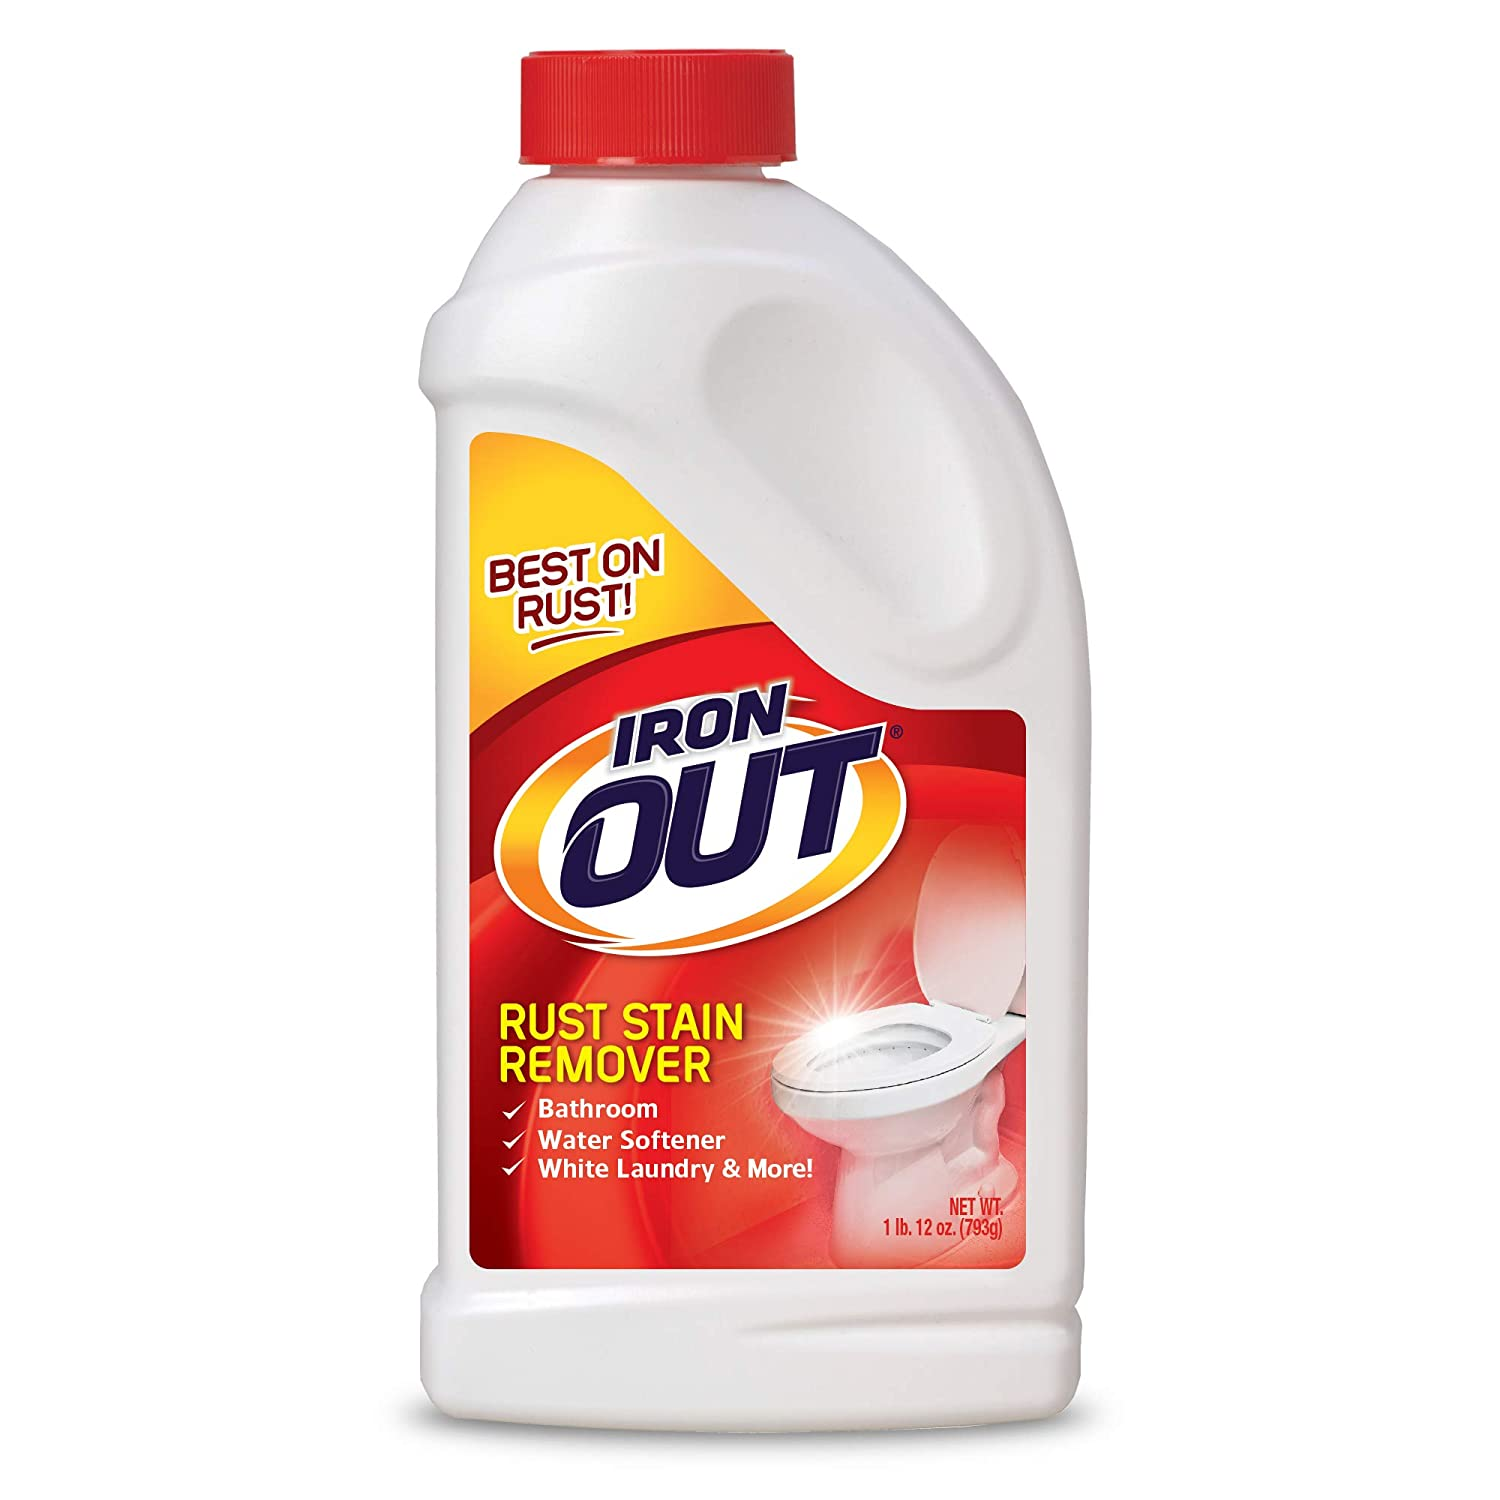 Iron OUT IO30N Rust Stain Remover Powder, 1 lb. 12 oz. Bottle